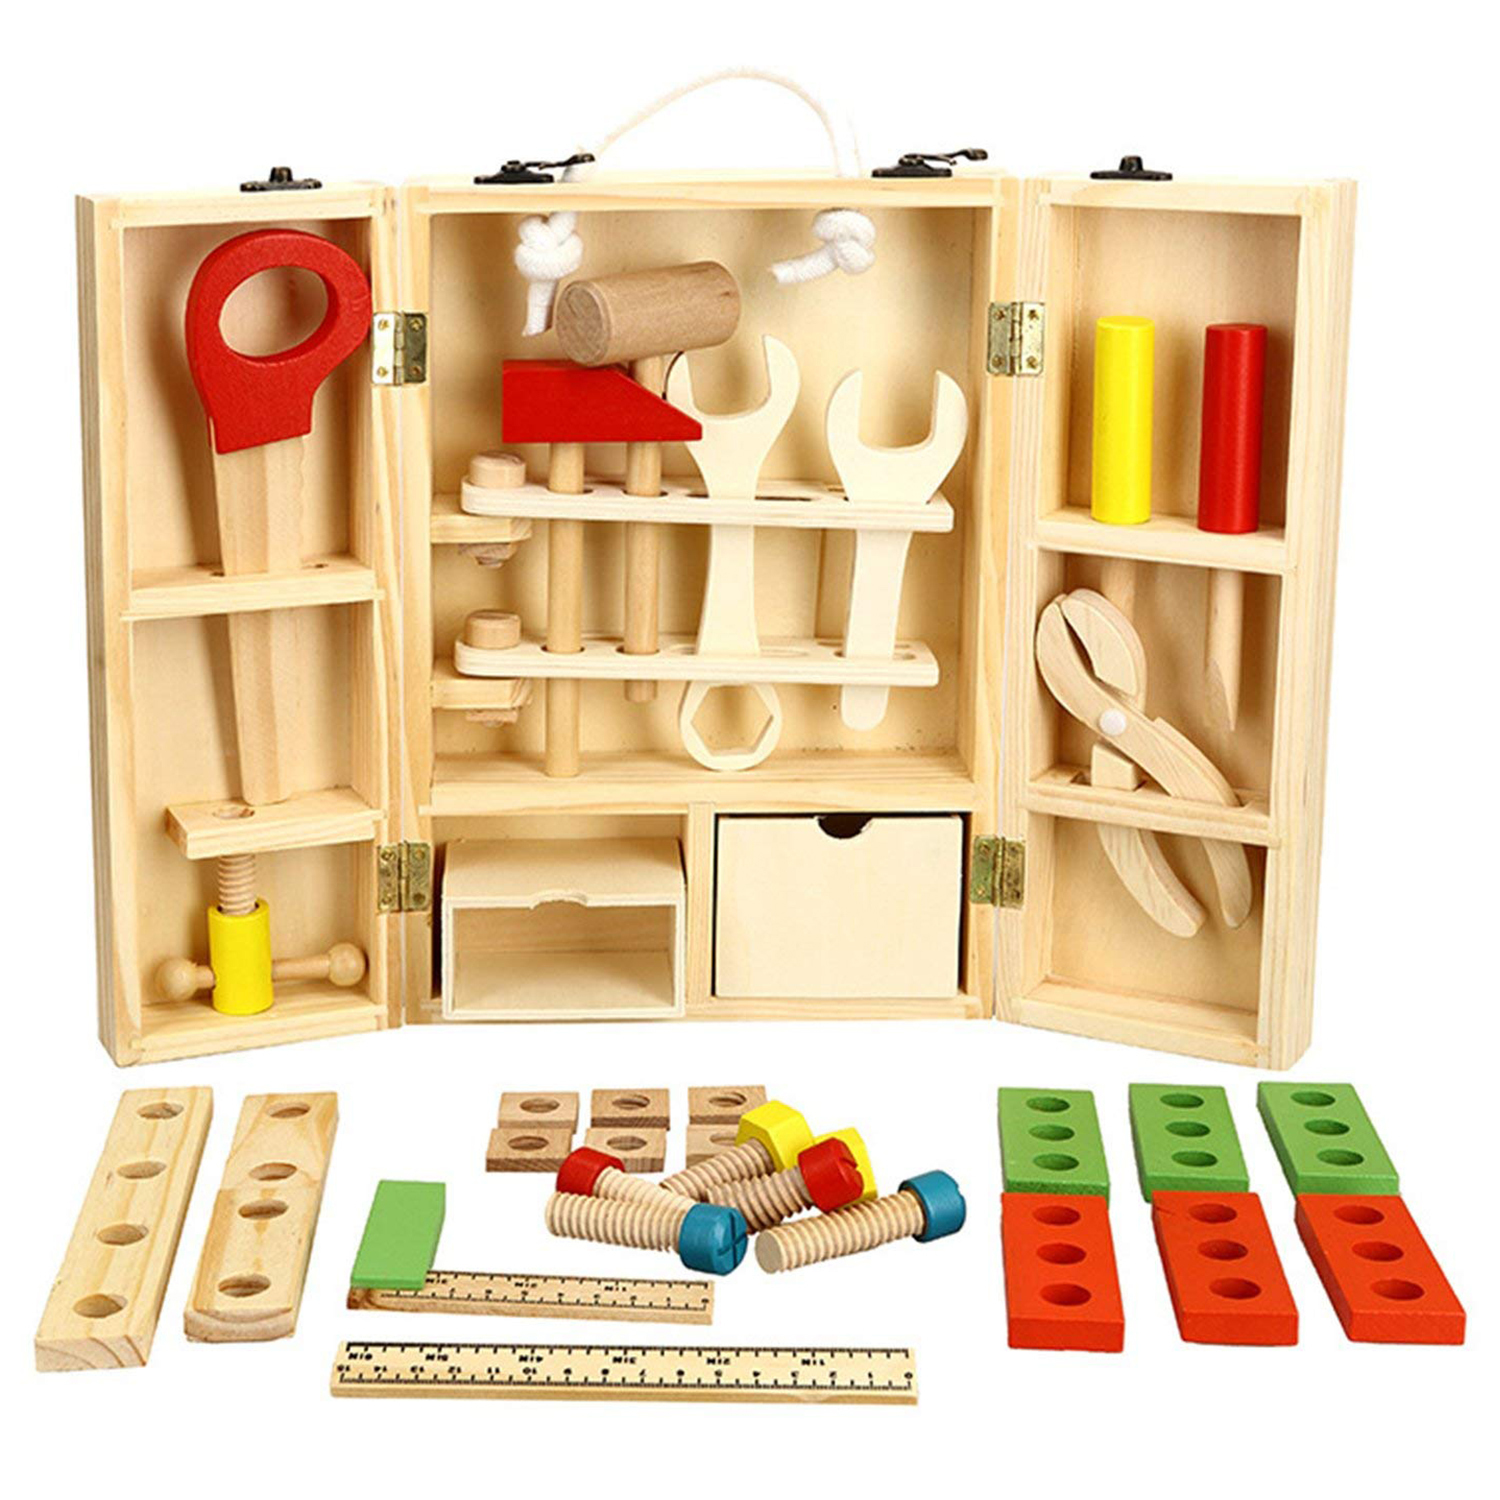 2019 New Multifunctional Wooden Tool Toys Pretend Play Tool Box Accessories Set Educational Construction Toys Kids Free Shipping